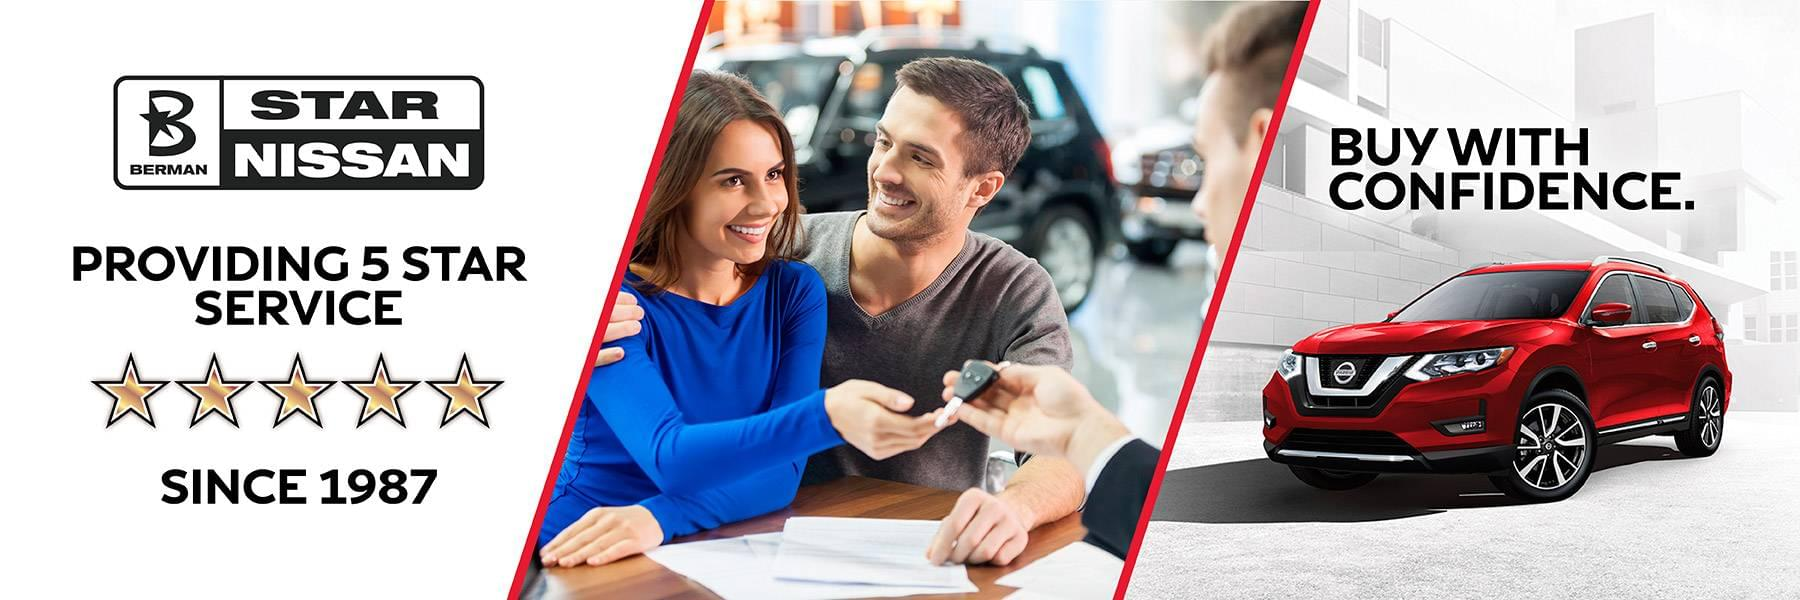 Buy and Service with Confidence at Star Nissan